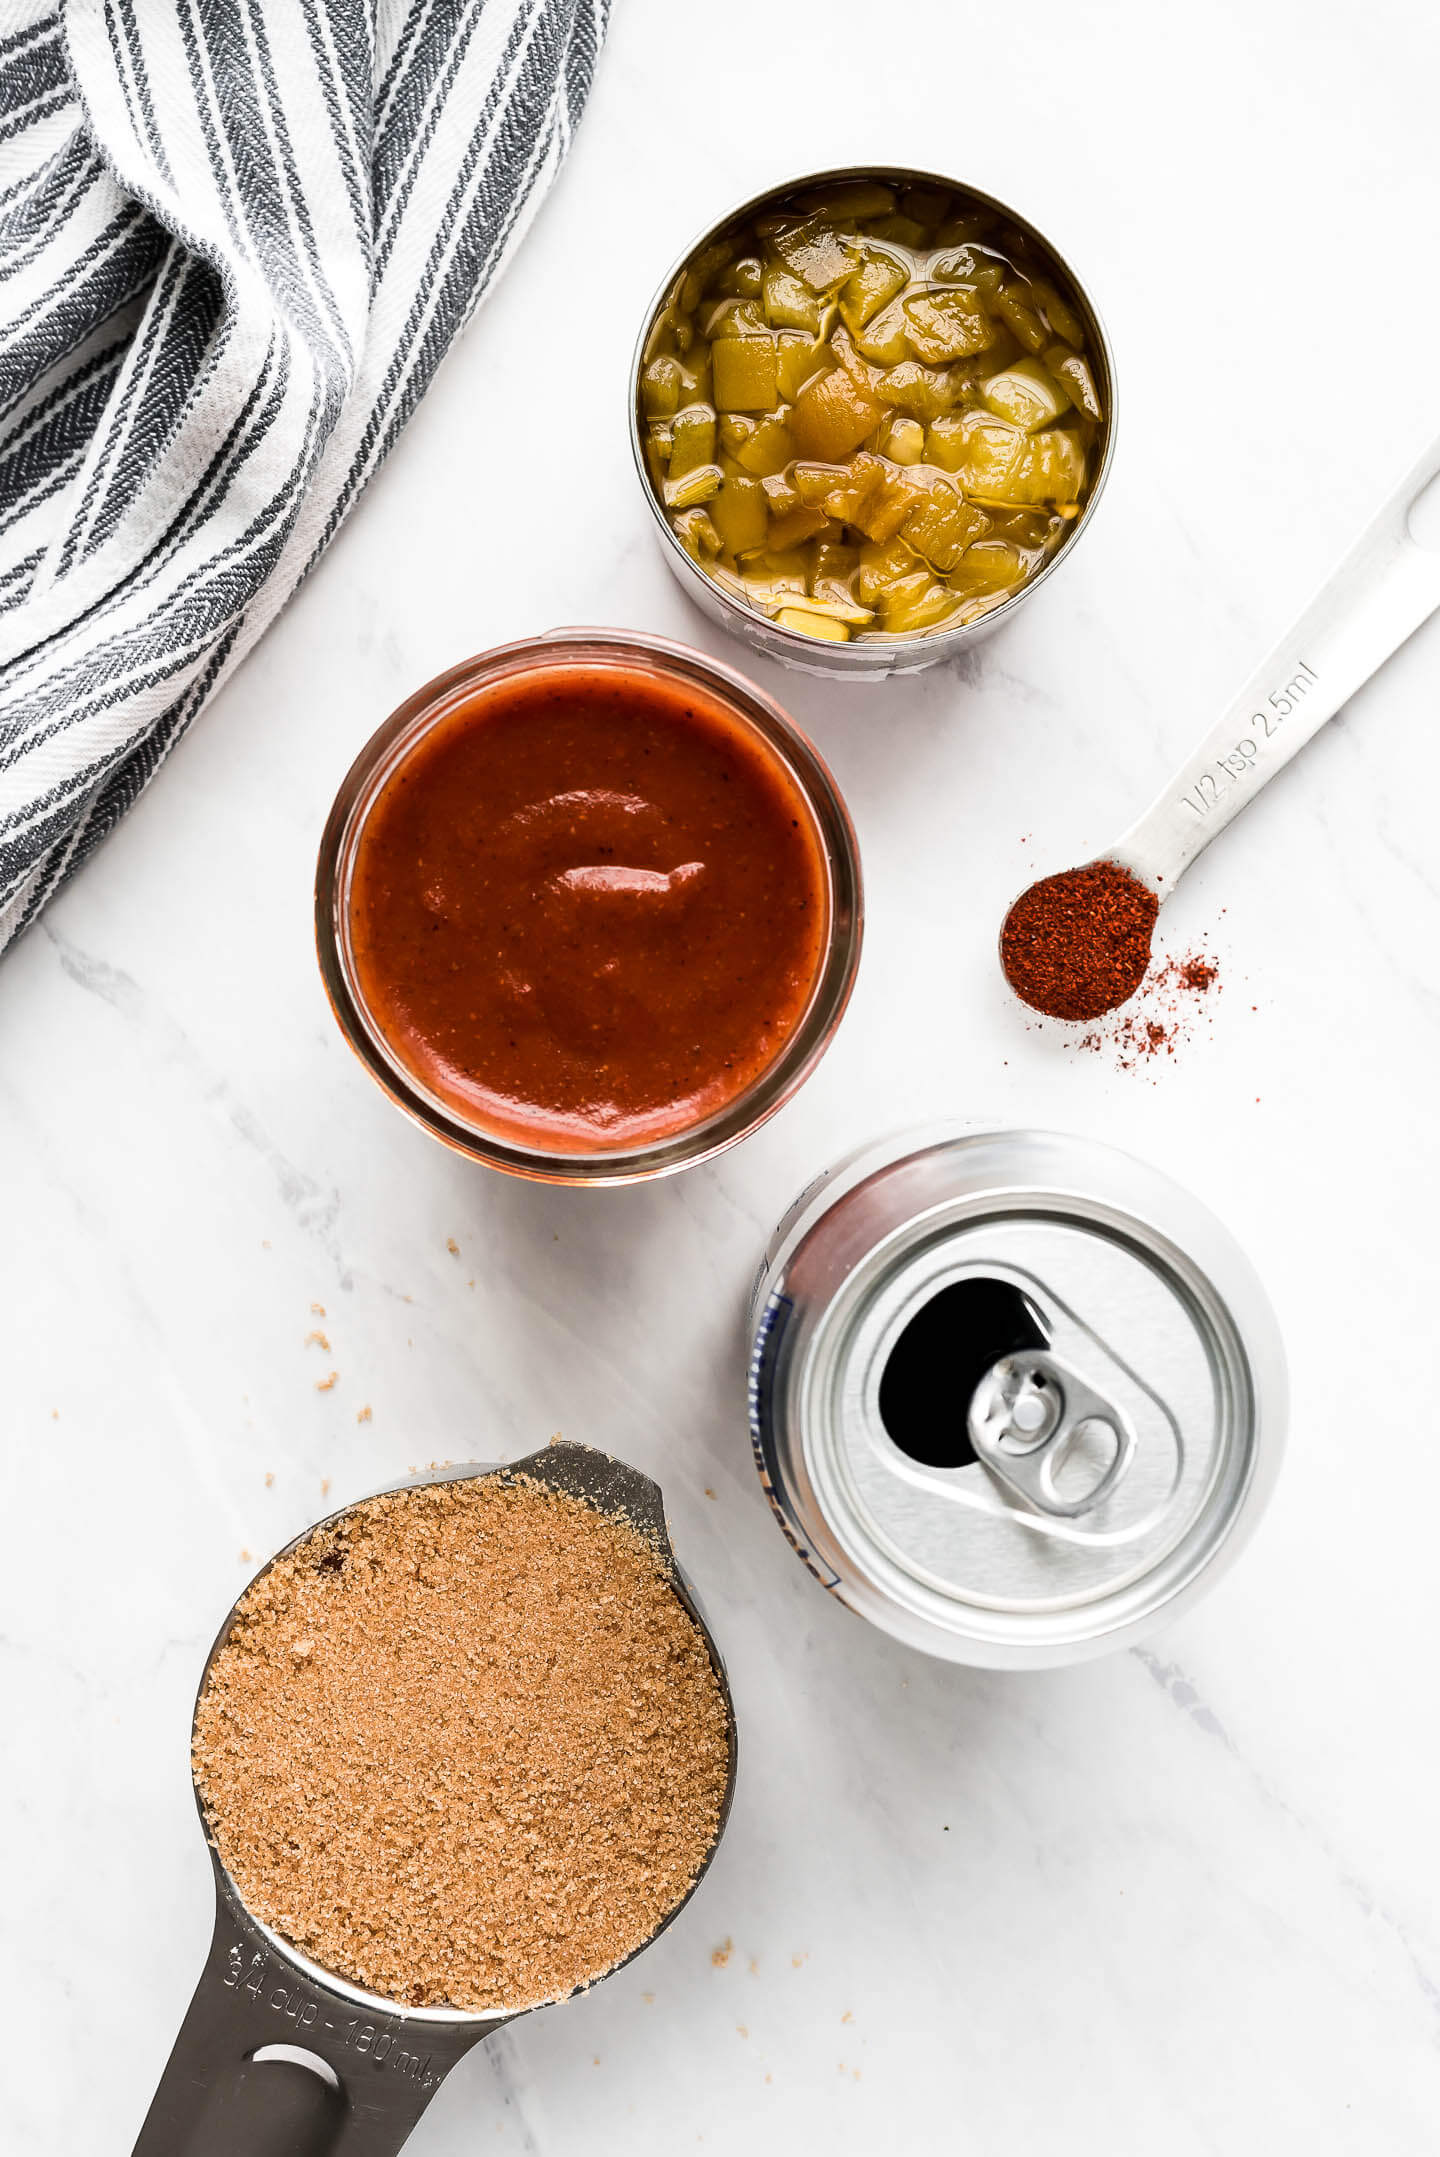 Top view of ingredients- measuring cup of brown sugar, can of soda, enchilada sauce, green chilies, and chili powder.